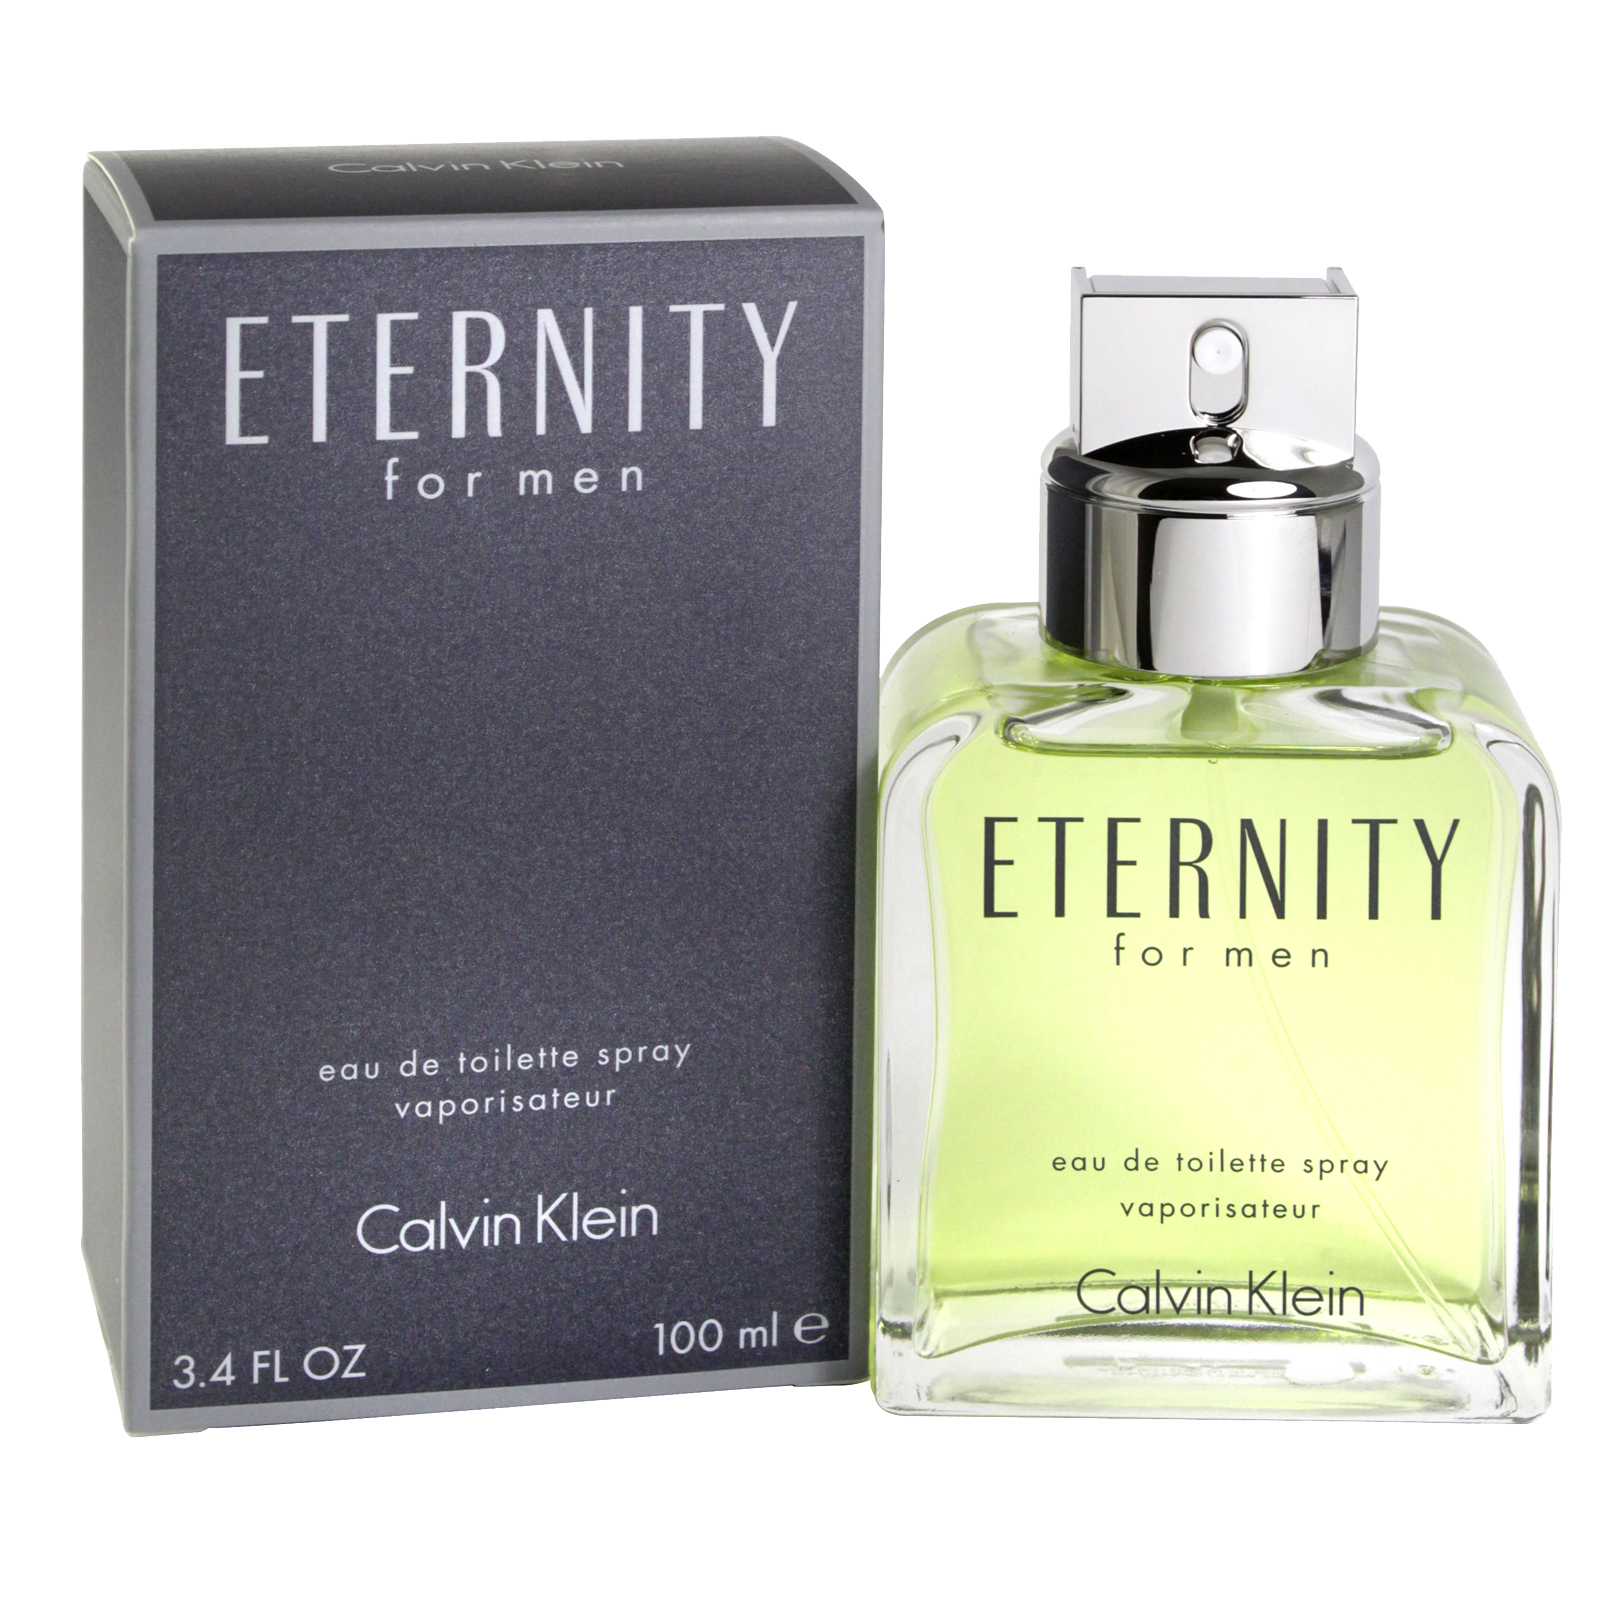 CK ETERNITY FOR MEN 100ML EDT SPRAY